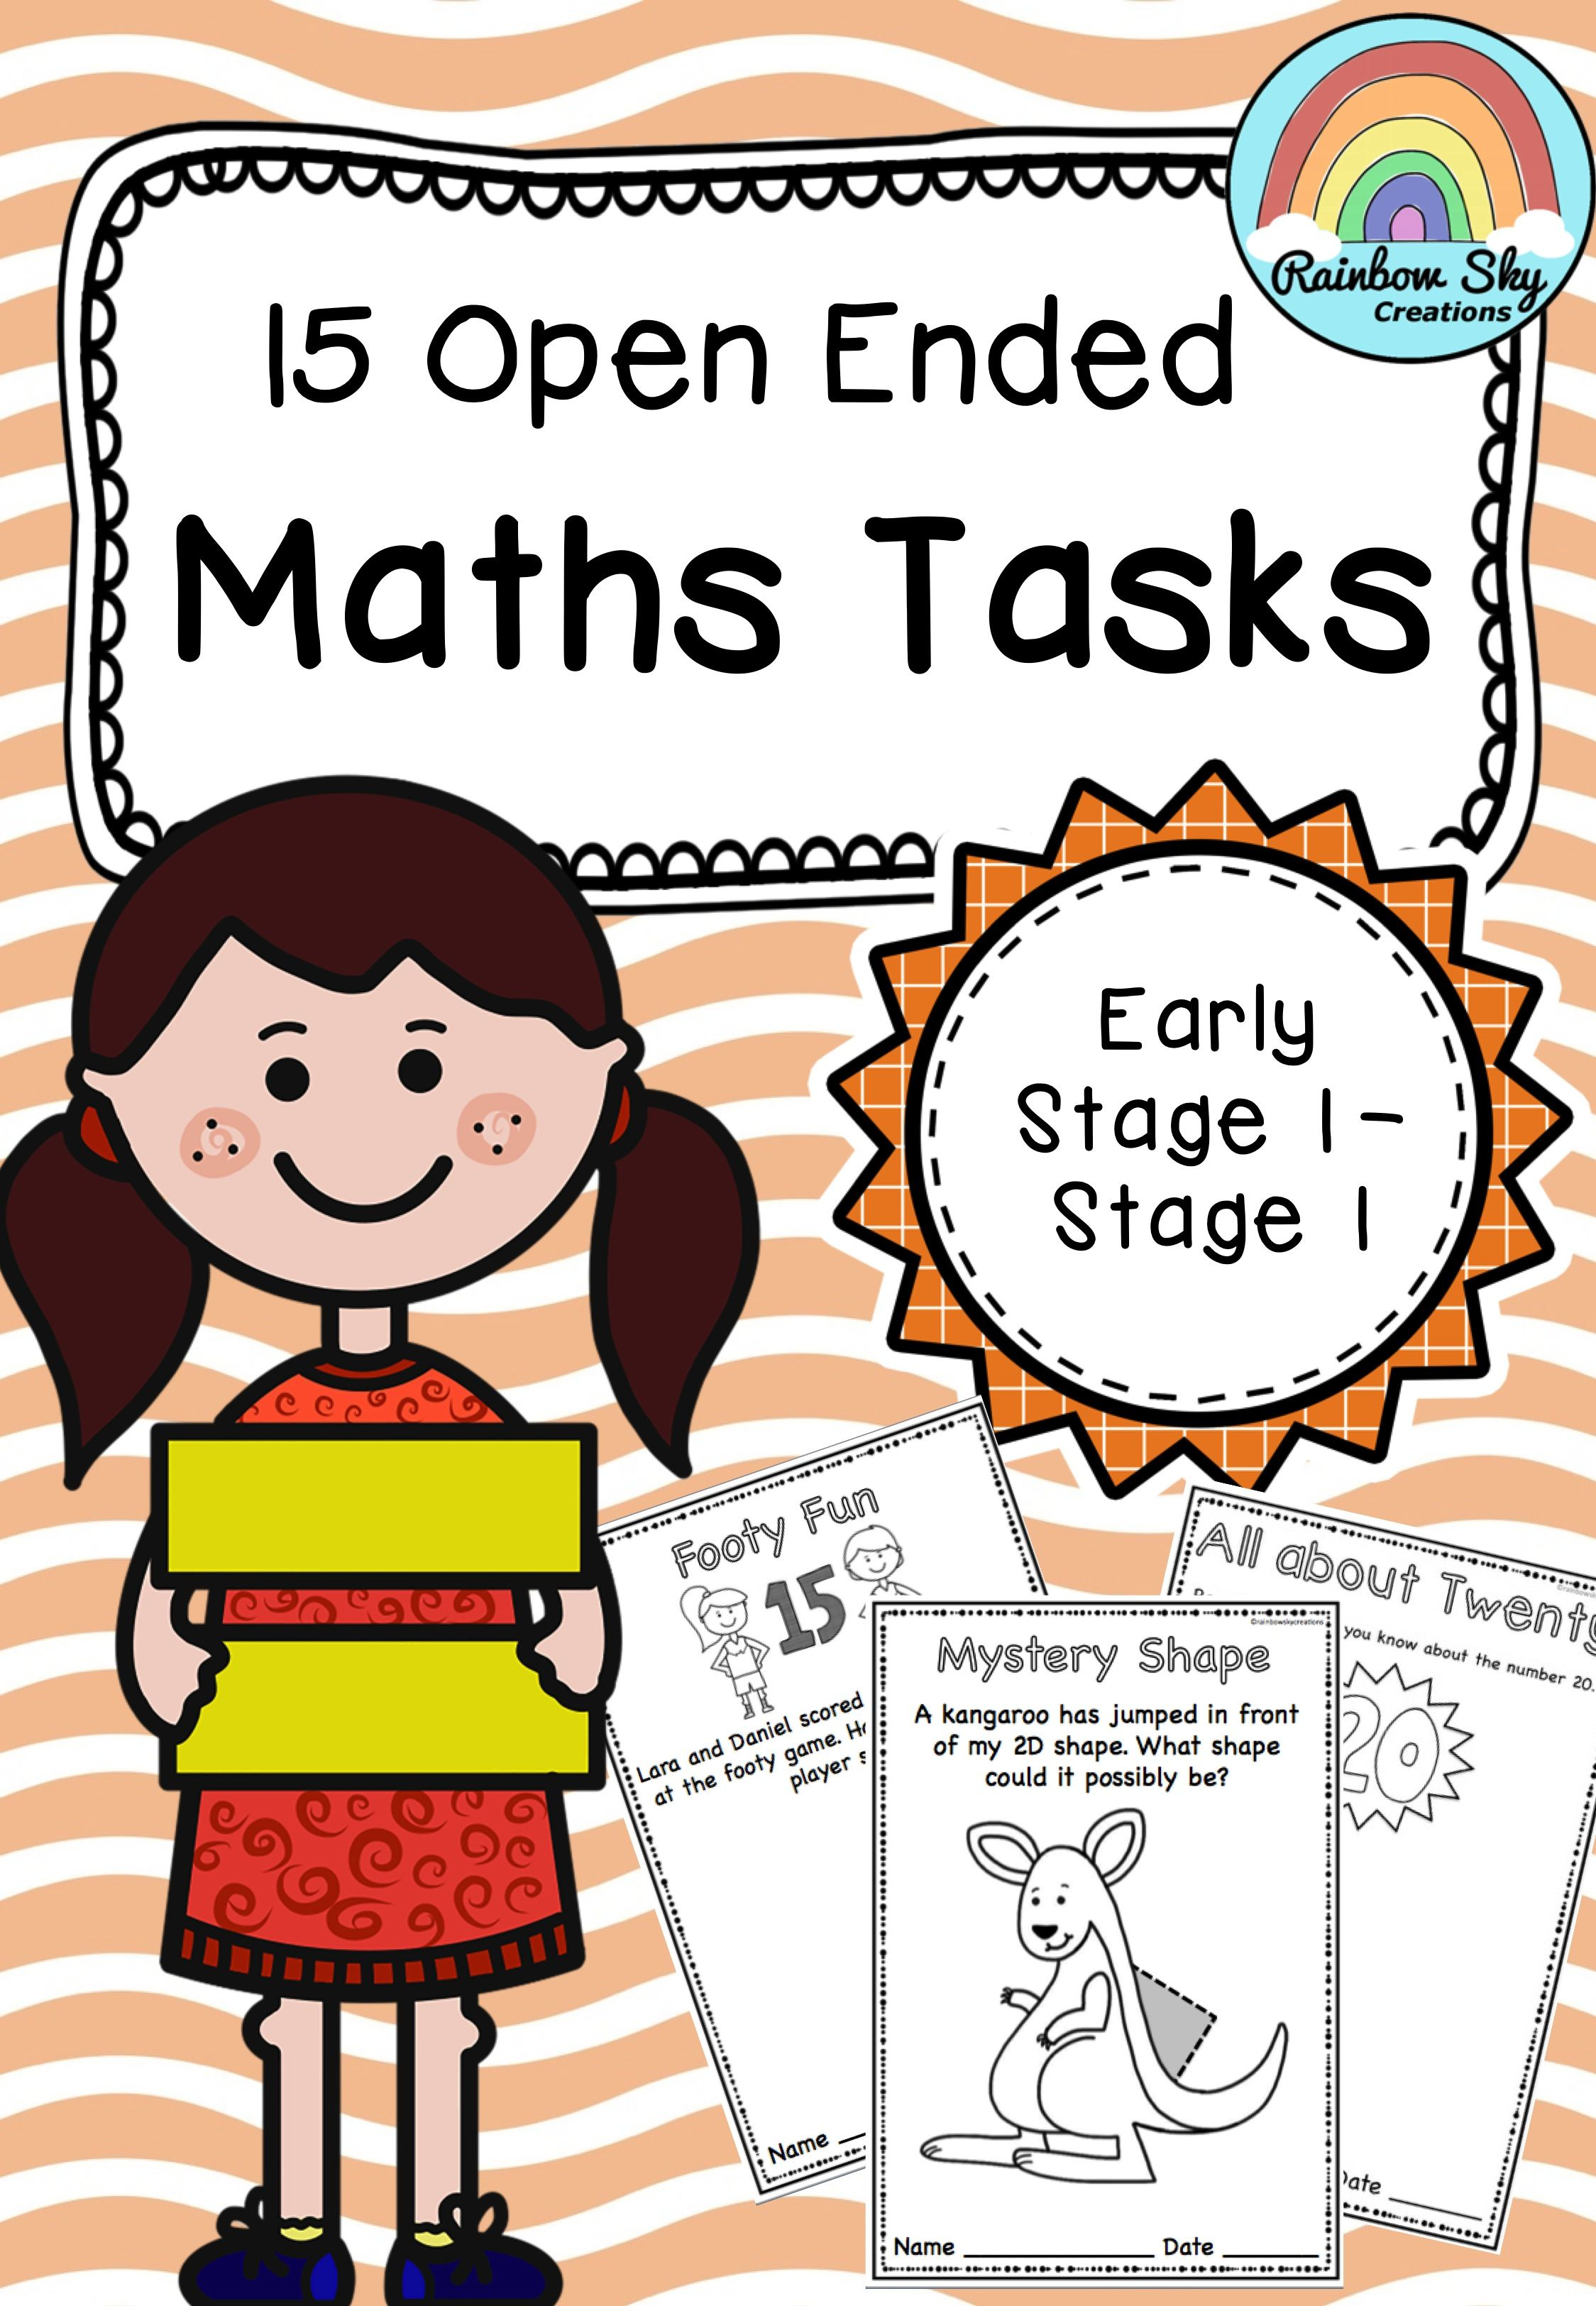 15 Open Ended Maths Tasks Suited To Students In